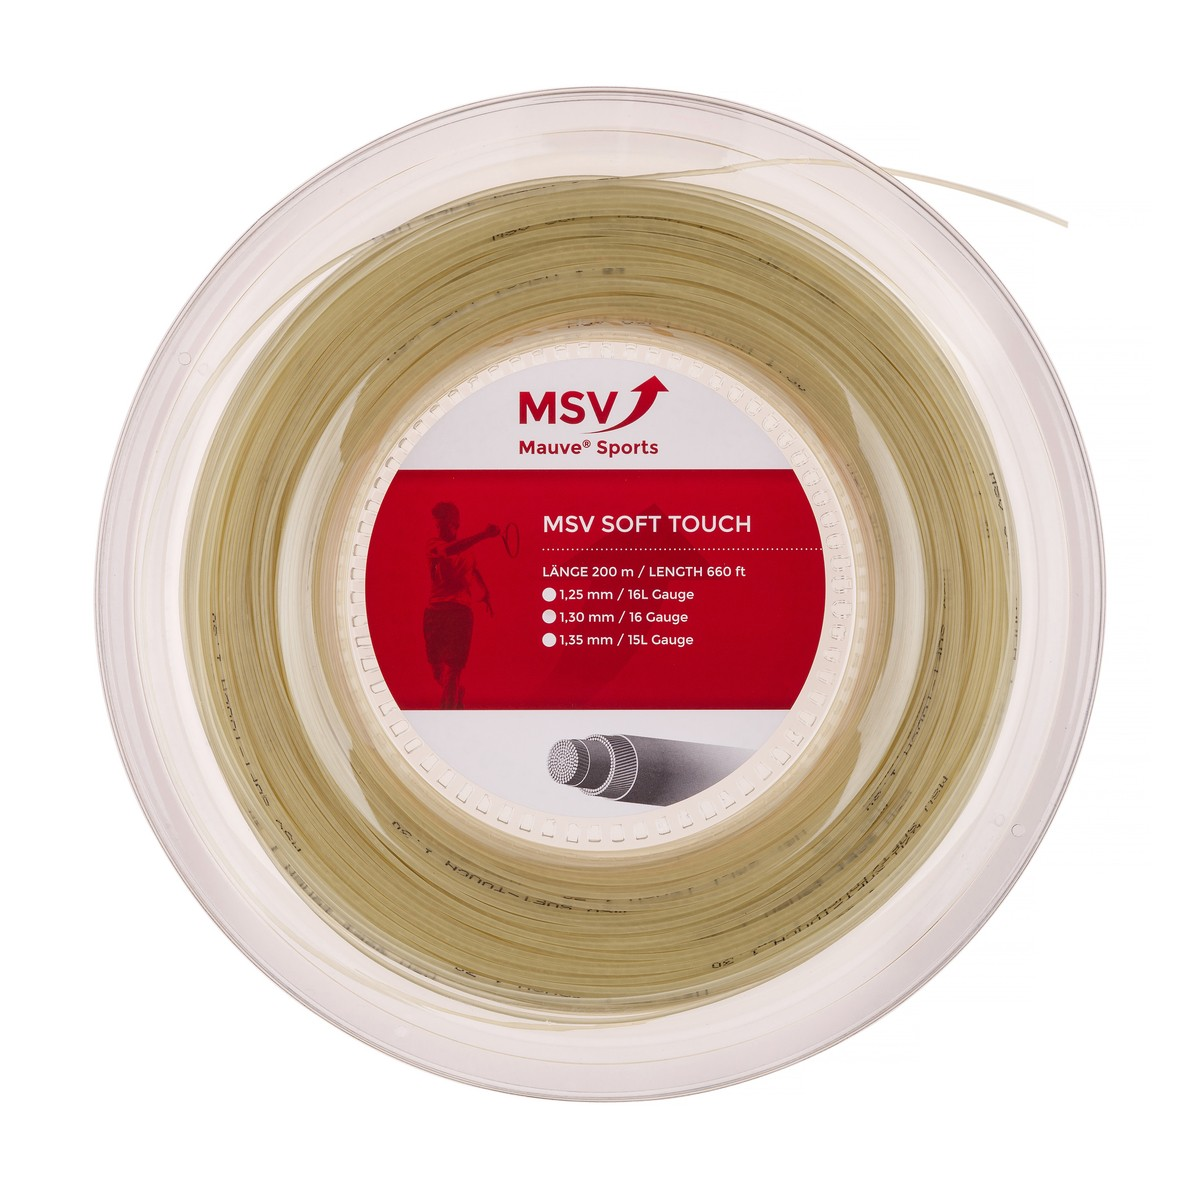 REEL MSV SOFT TOUCH (200 METRES)